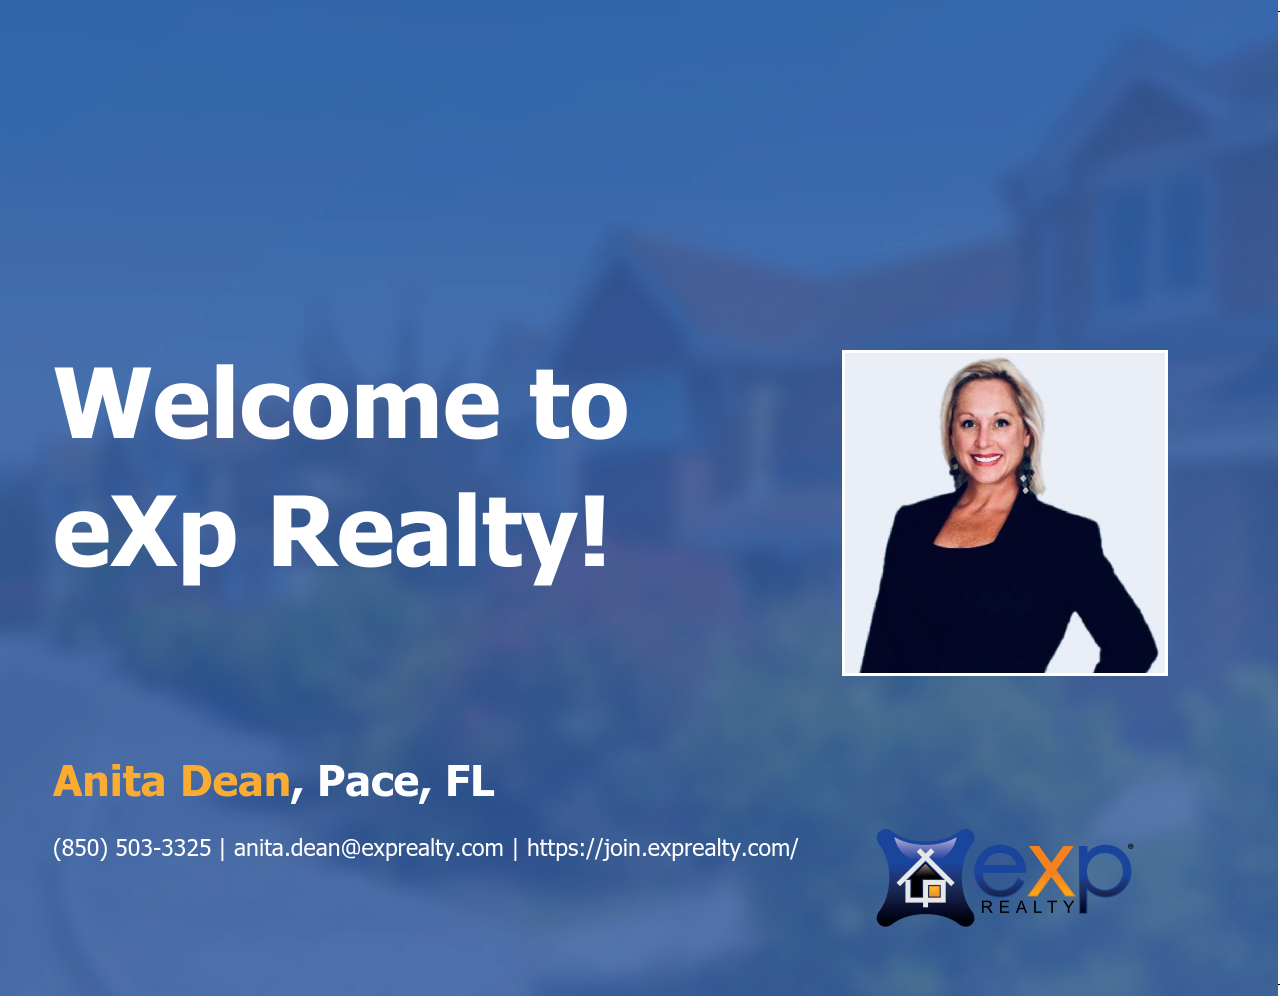 Anita Dean Joined eXp Realty!